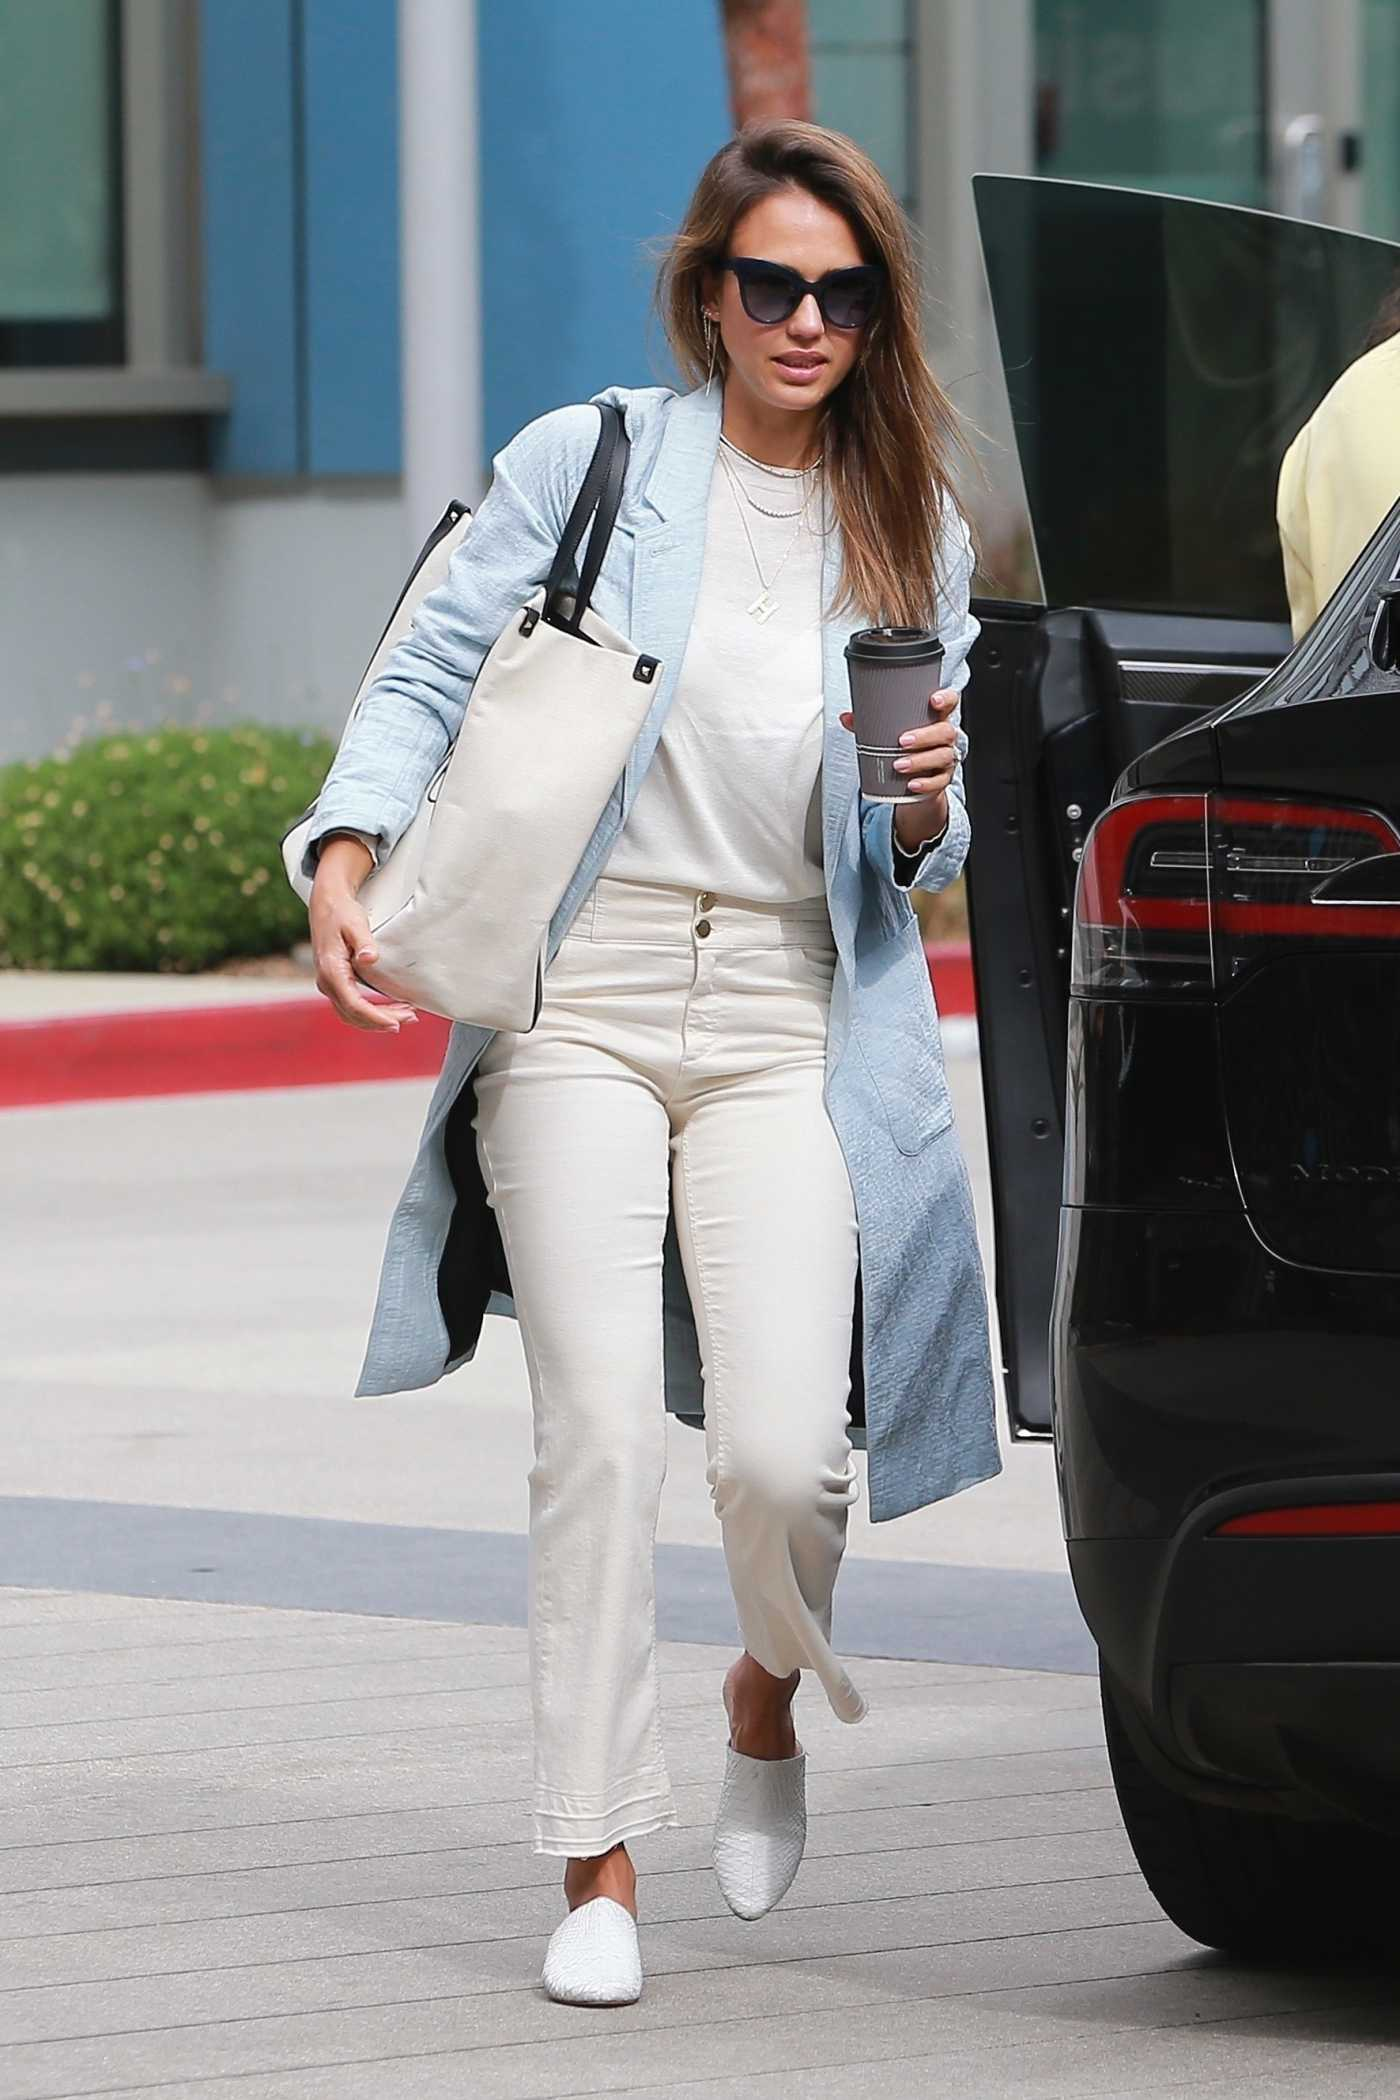 Jessica Alba in a Blue Trench Coat Heads to Her Office in Los Angeles 07/09/2019